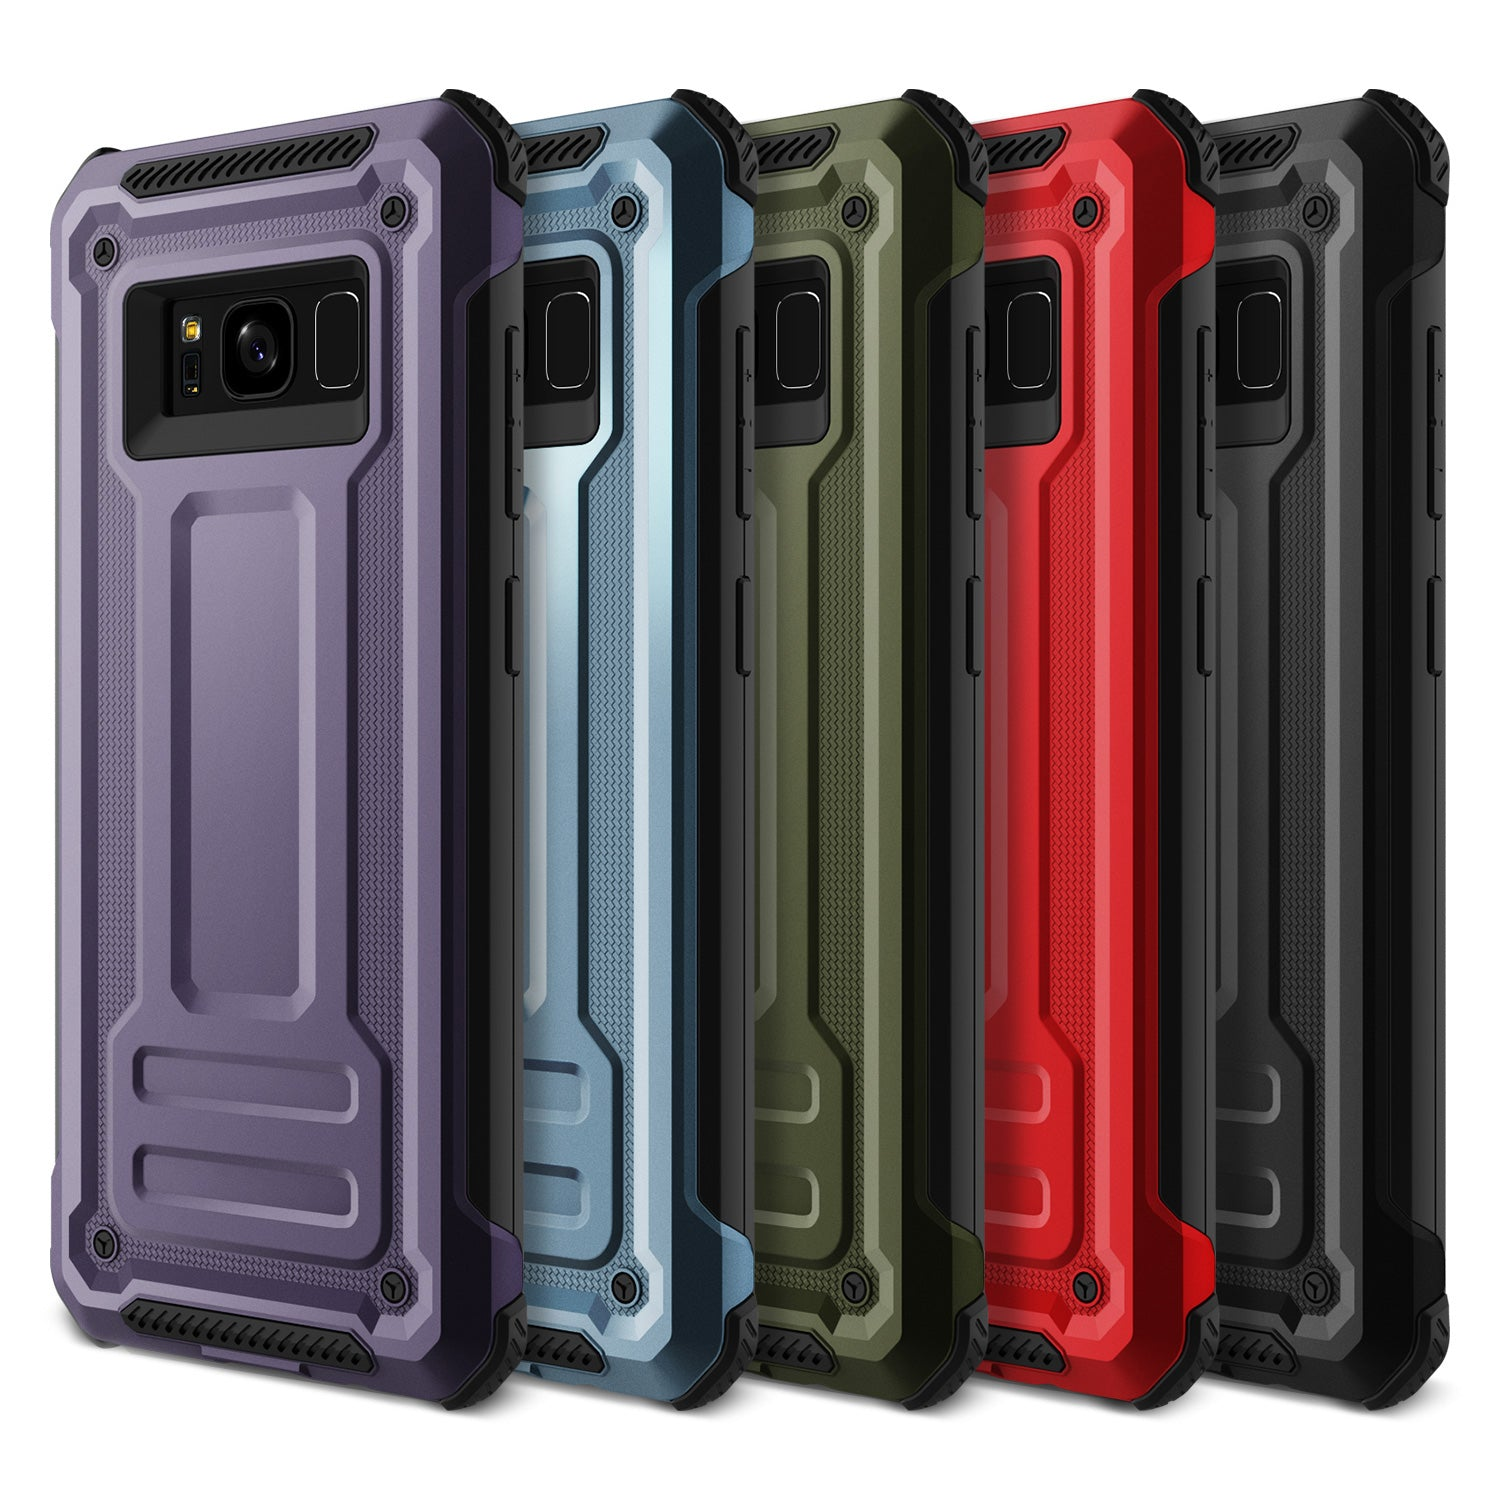 Terra Guard Galaxy S8 case from VRS Design